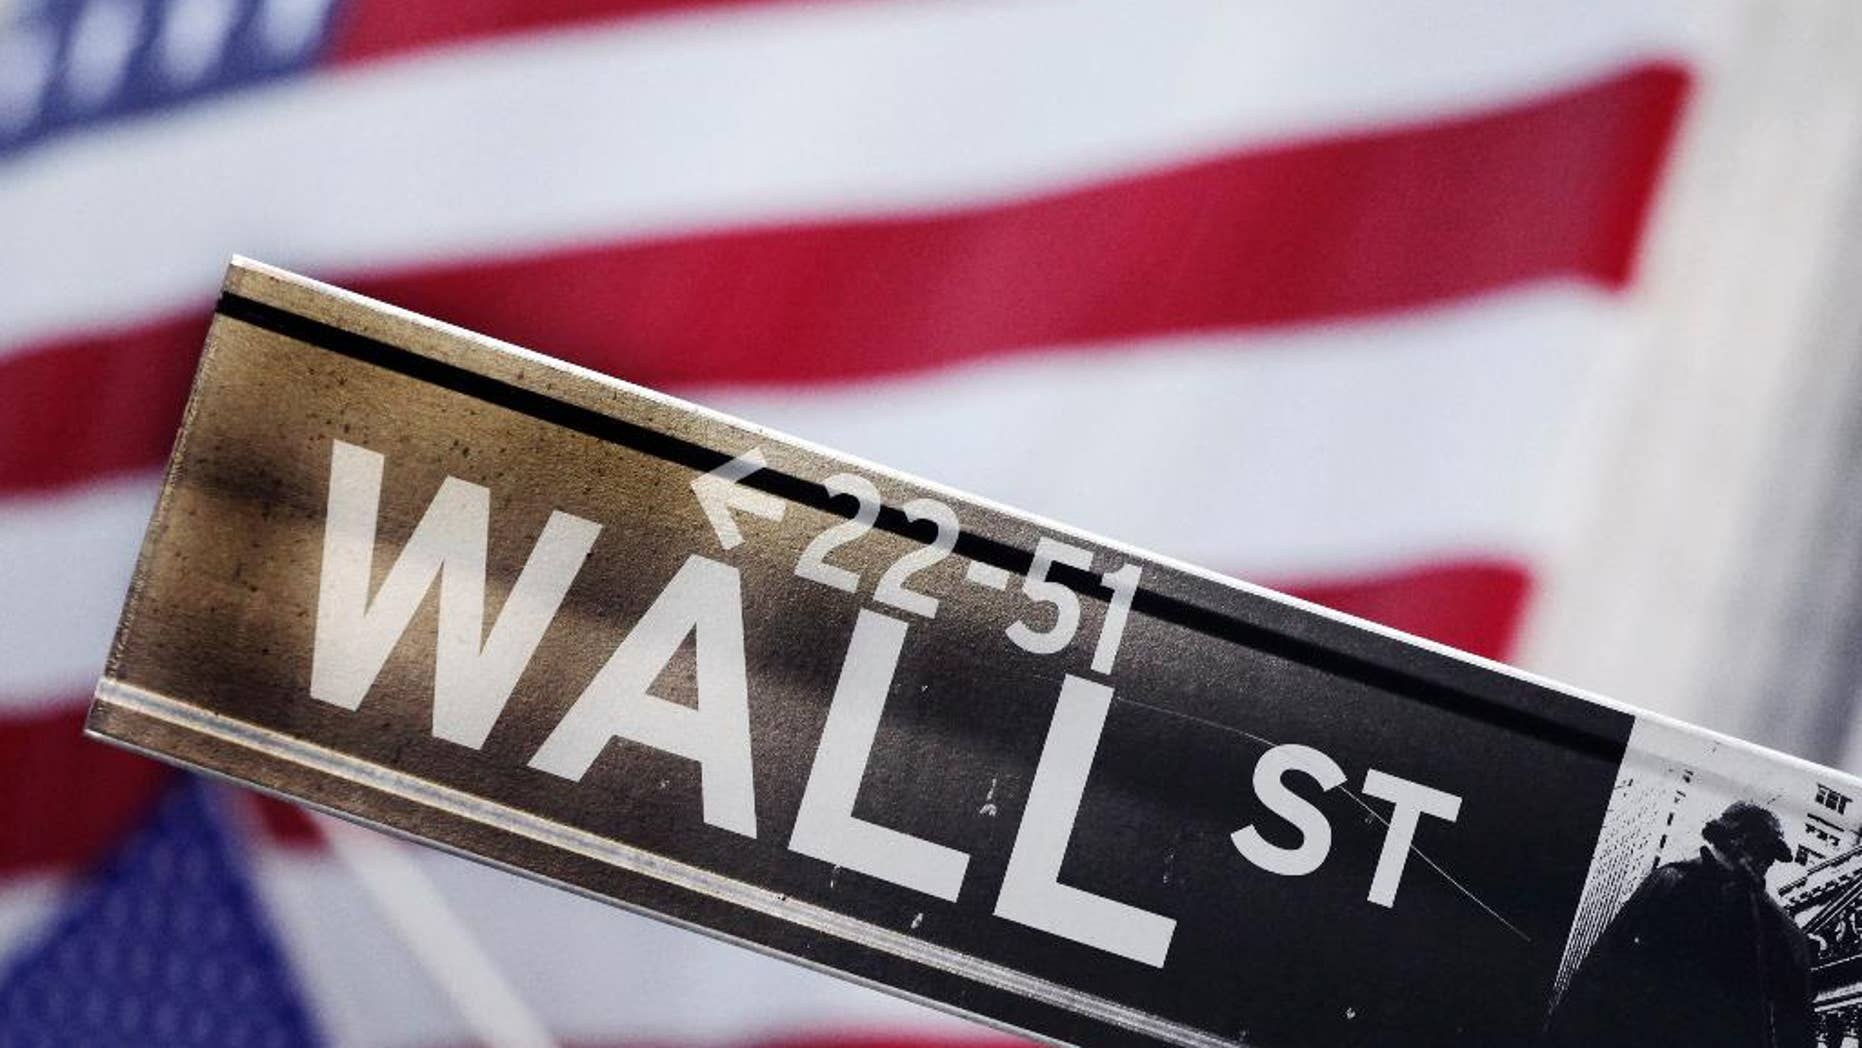 FILE - This Aug. 9, 2011 file photo shows a Wall Street street sign near the New York Stock Exchange, in New York. U.S. stock indexes are opening mostly higher Monday, Dec. 22, 2014, as the market builds on its big gains from last week. (AP Photo/Mark Lennihan, File)